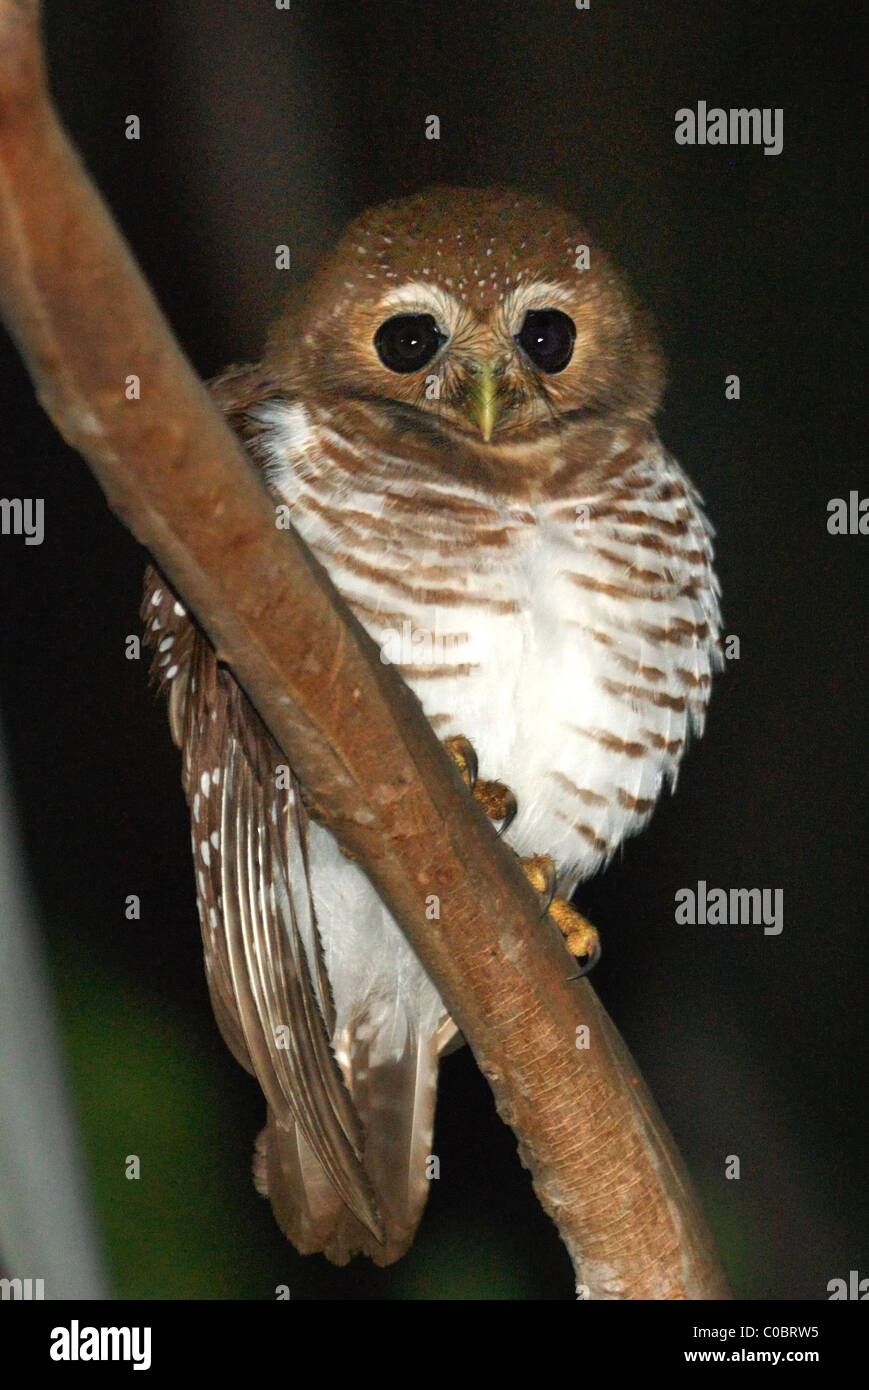 White-browed Owl (Ninox superciliaris) in the Berenty Nature Reserve, southern Madagascar - Stock Image